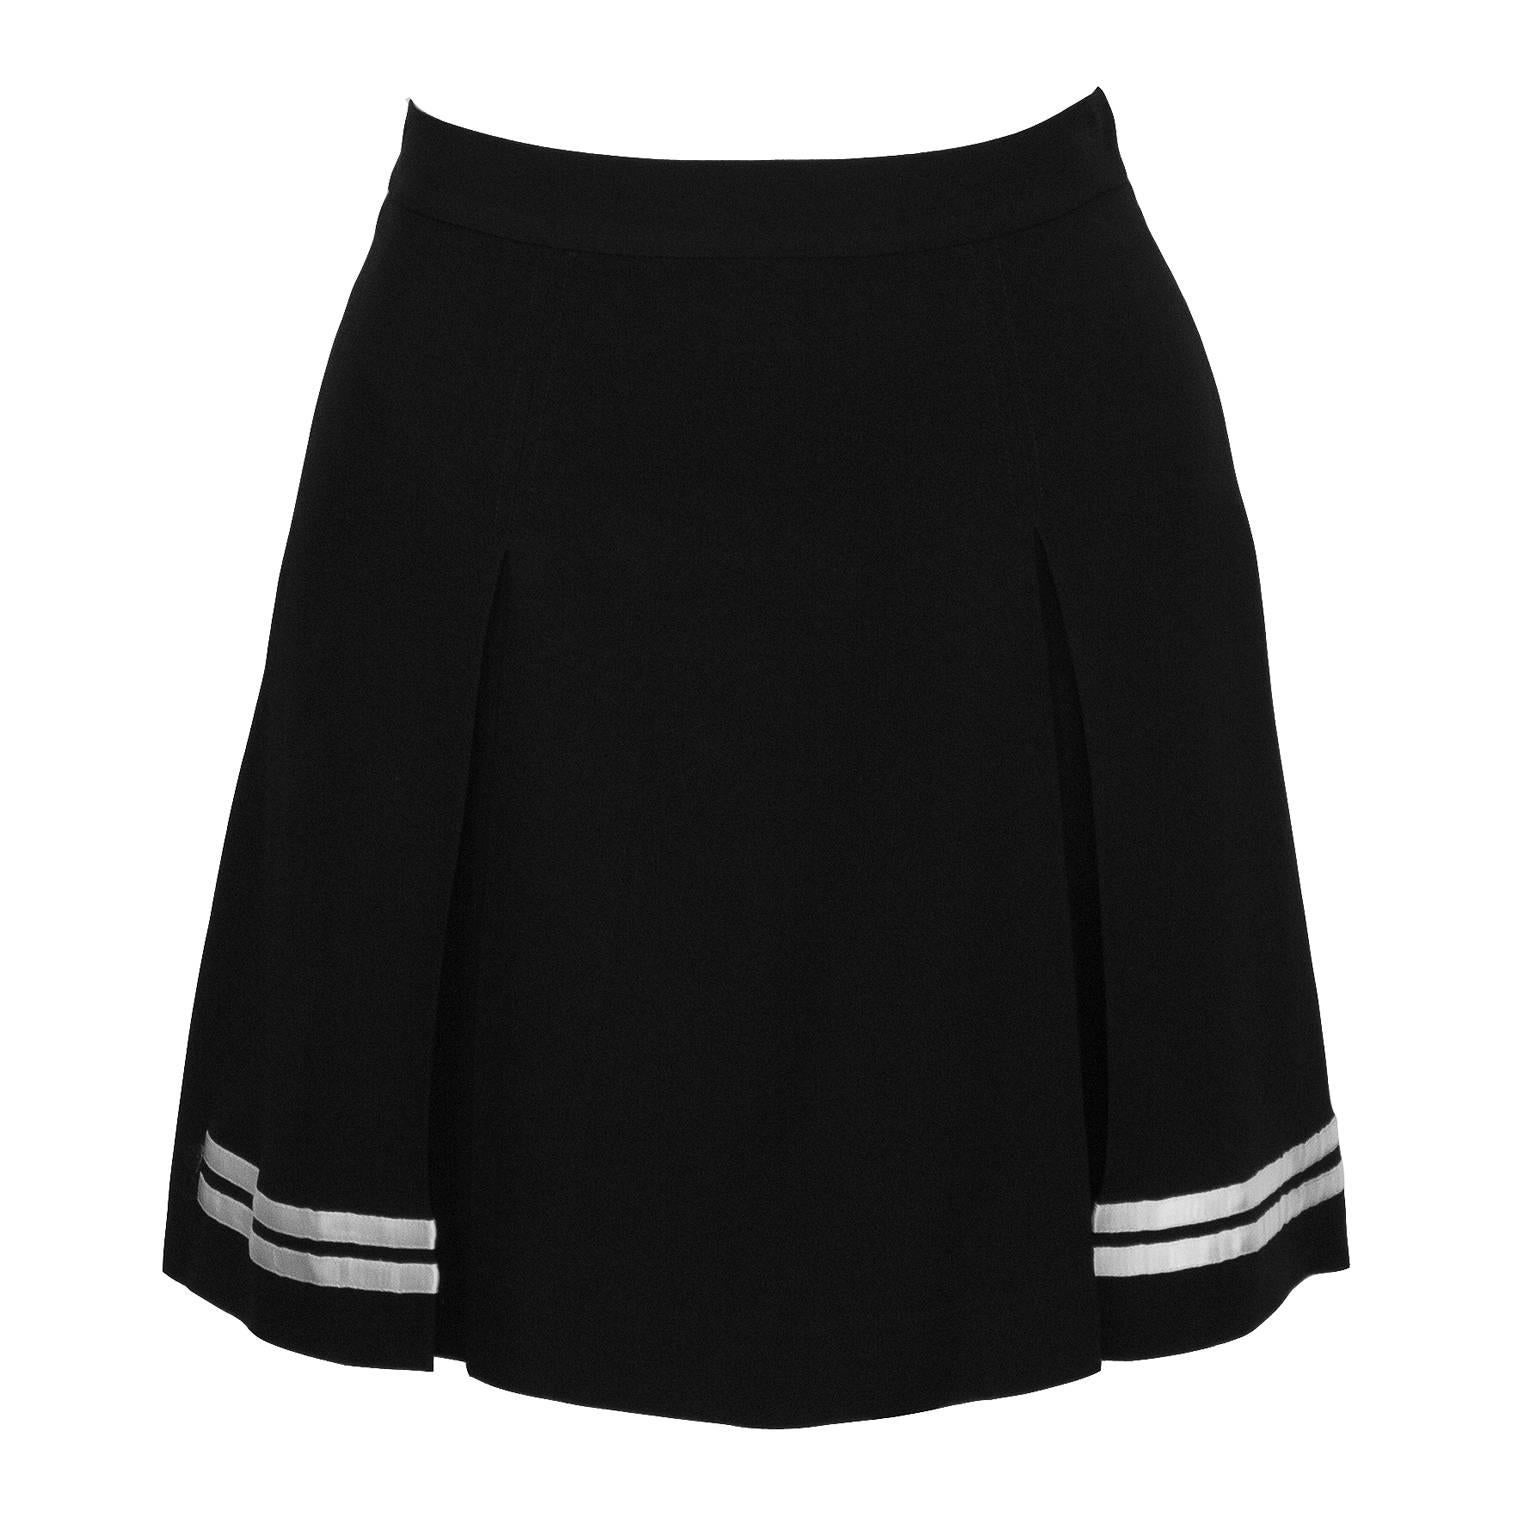 1990's Dolce & Gabbana Black and White Mini Skort